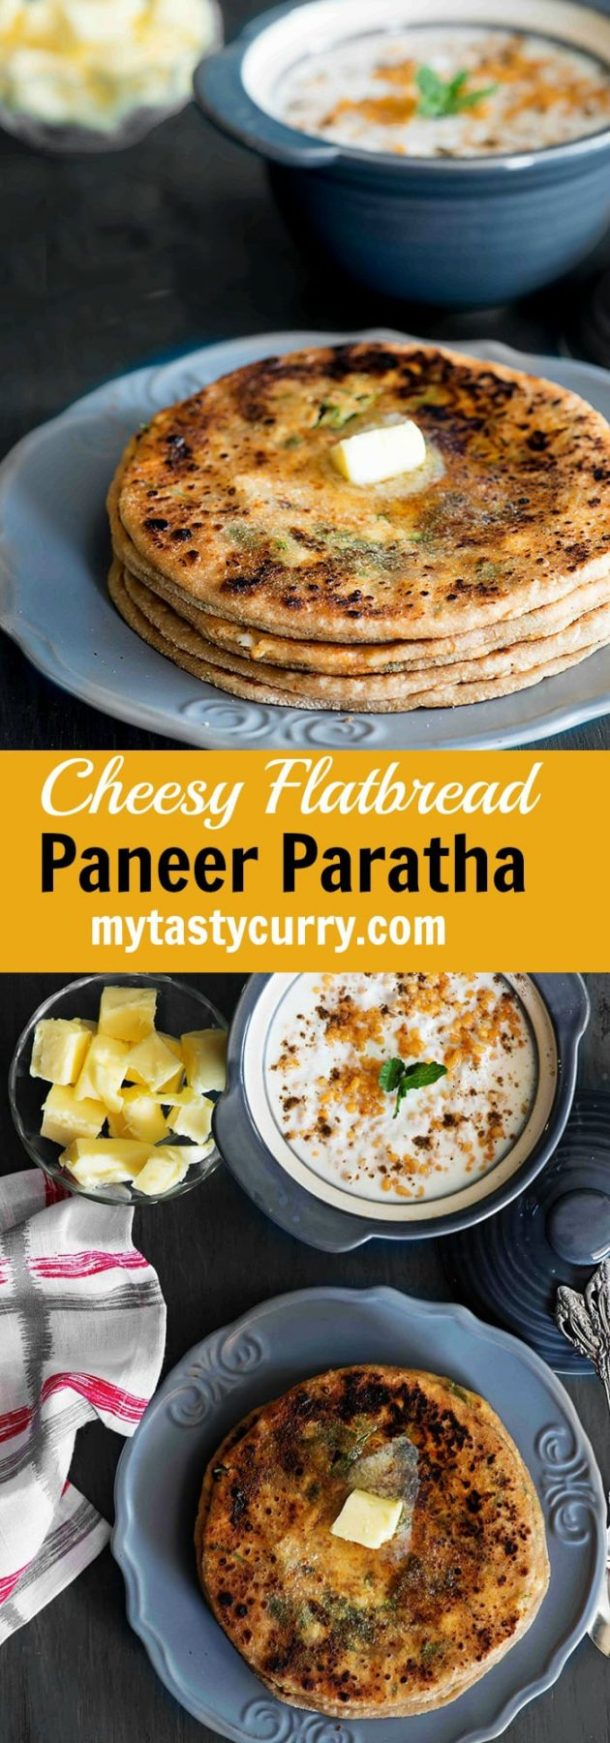 Paneer Paratha or Cottage Cheese stuffed wholewheat Indian flat breads for breakfast, lunch or dinner. #paneer #paratha #cottagecheese #flatbread